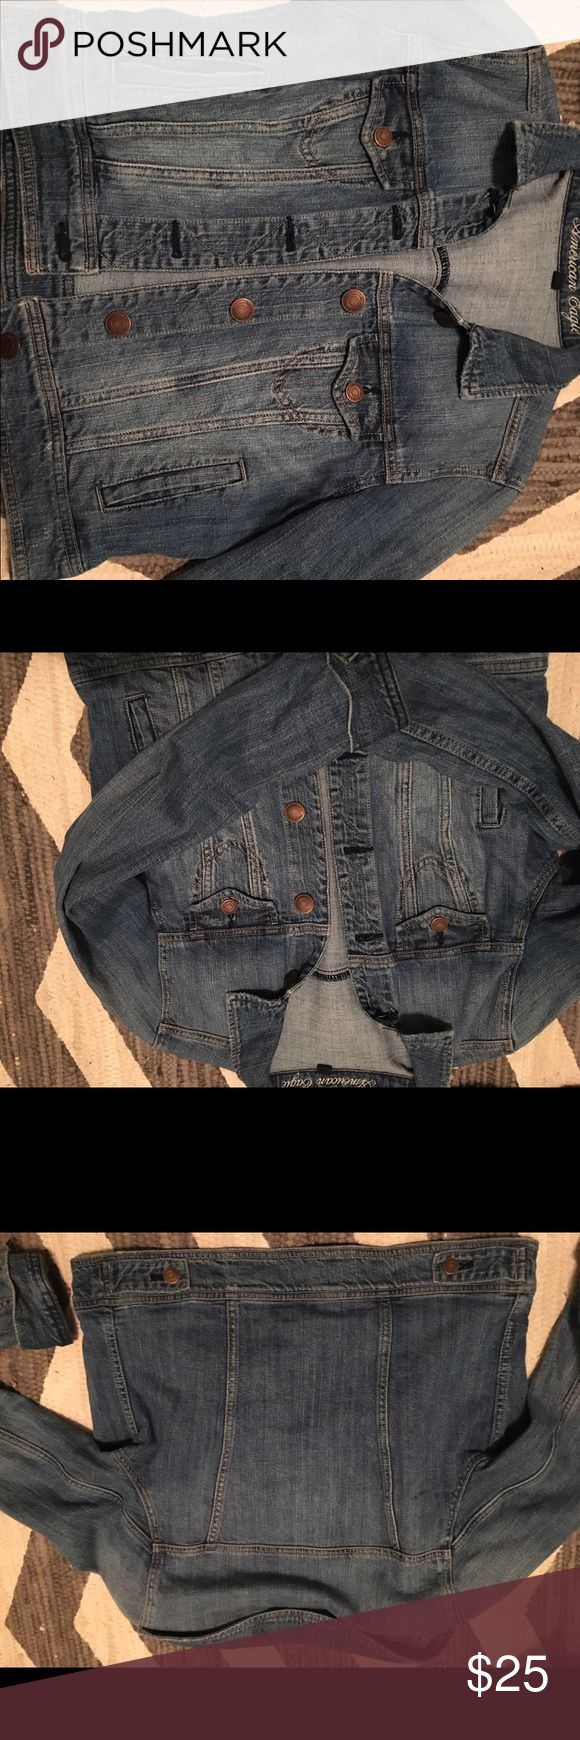 American eagle jean jacket American eagle jean jacket for sale! In good condition just don't wear it anymore! American Eagle Outfitters Jackets & Coats Jean Jackets